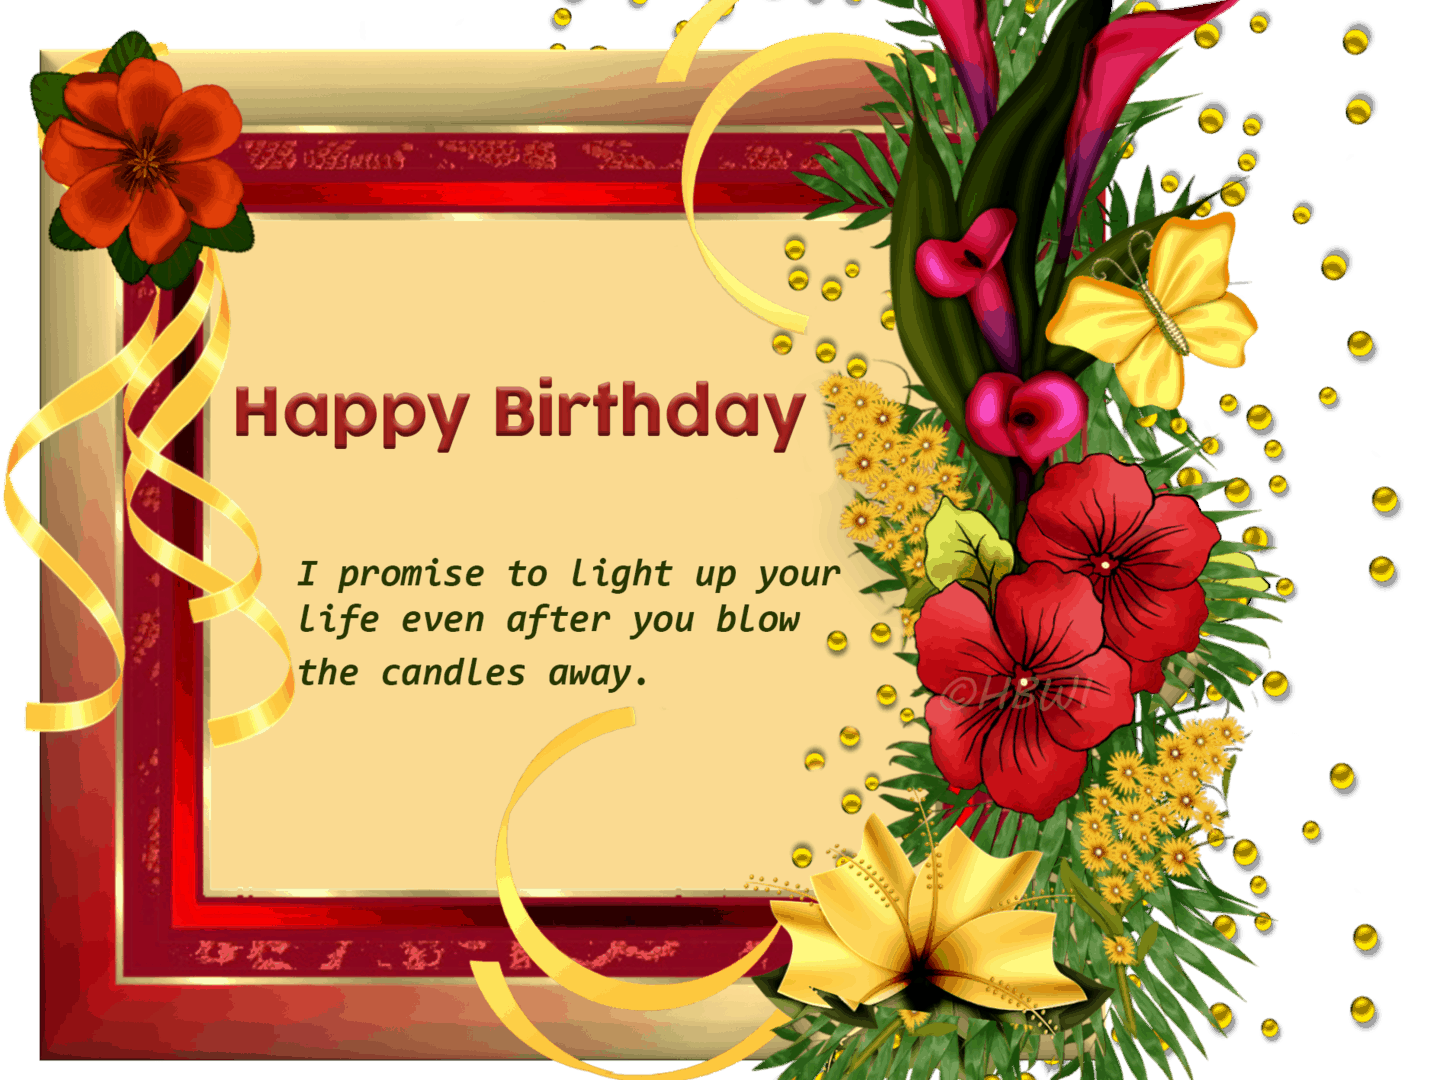 All new exclusive 25 hd happy birthday wishes images 2018 happy exclusive happy birthday wishes cards with flowers izmirmasajfo